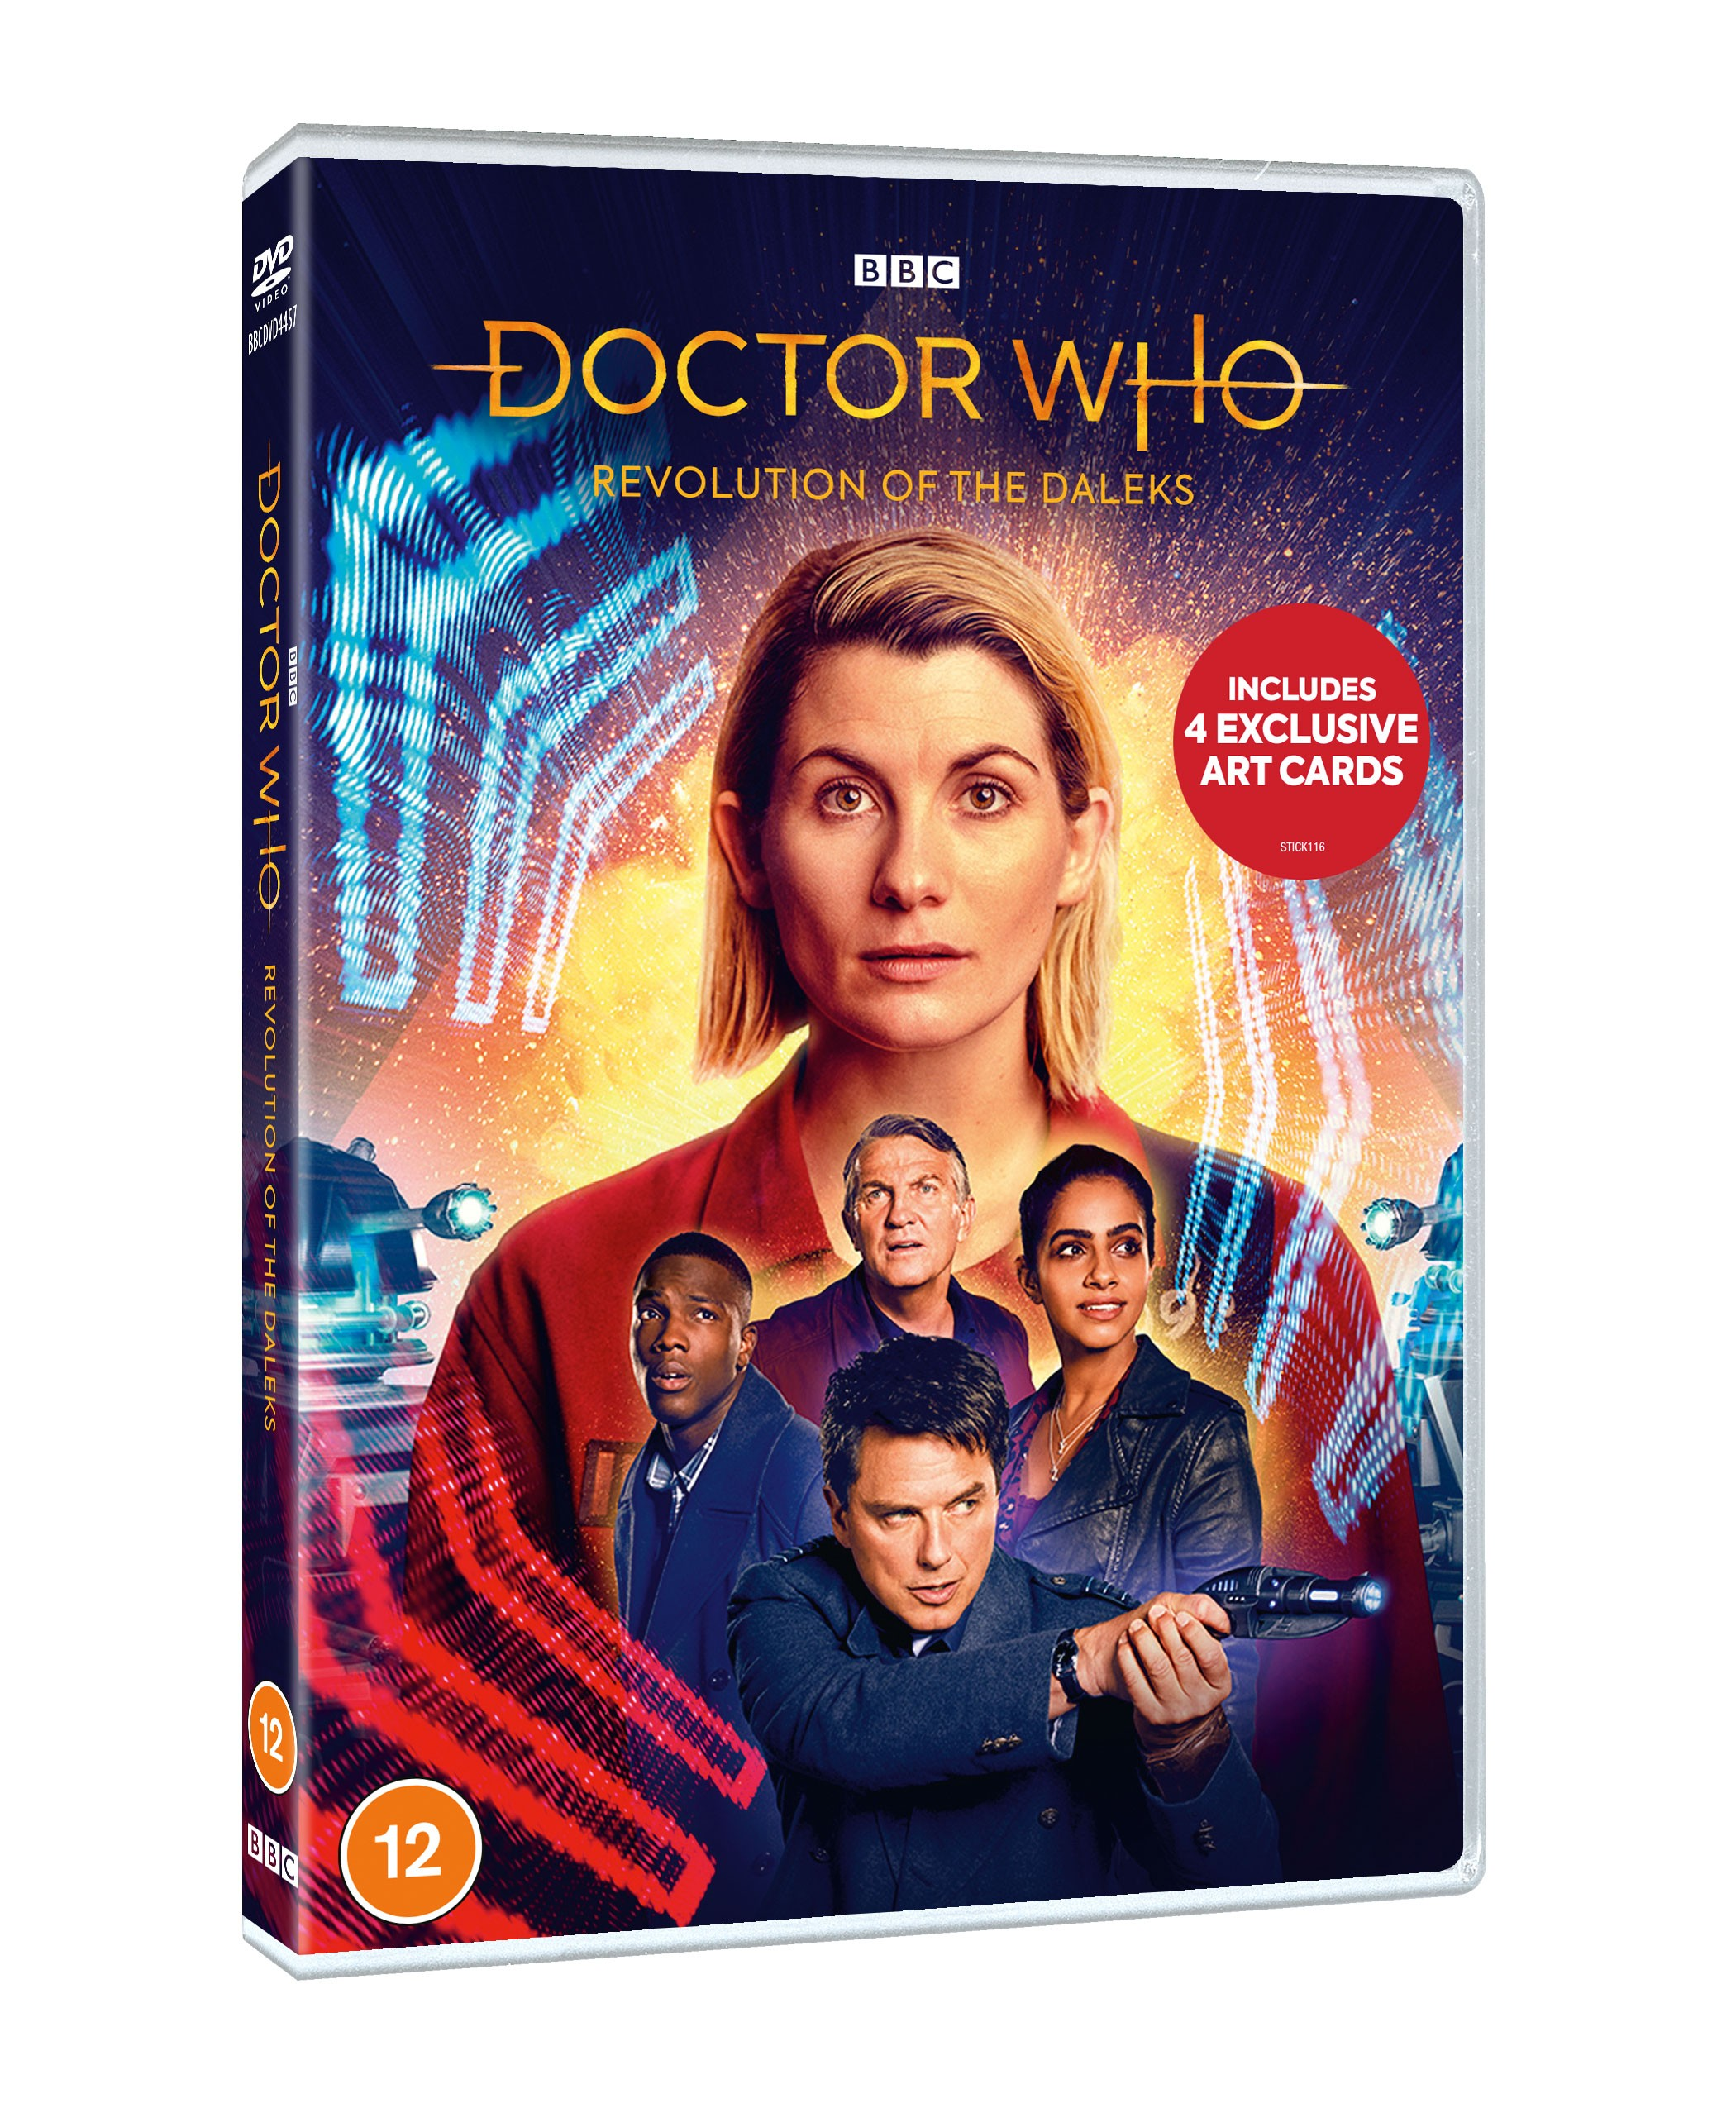 Doctor Who Revolution of the Daleks DVD and Blu-ray